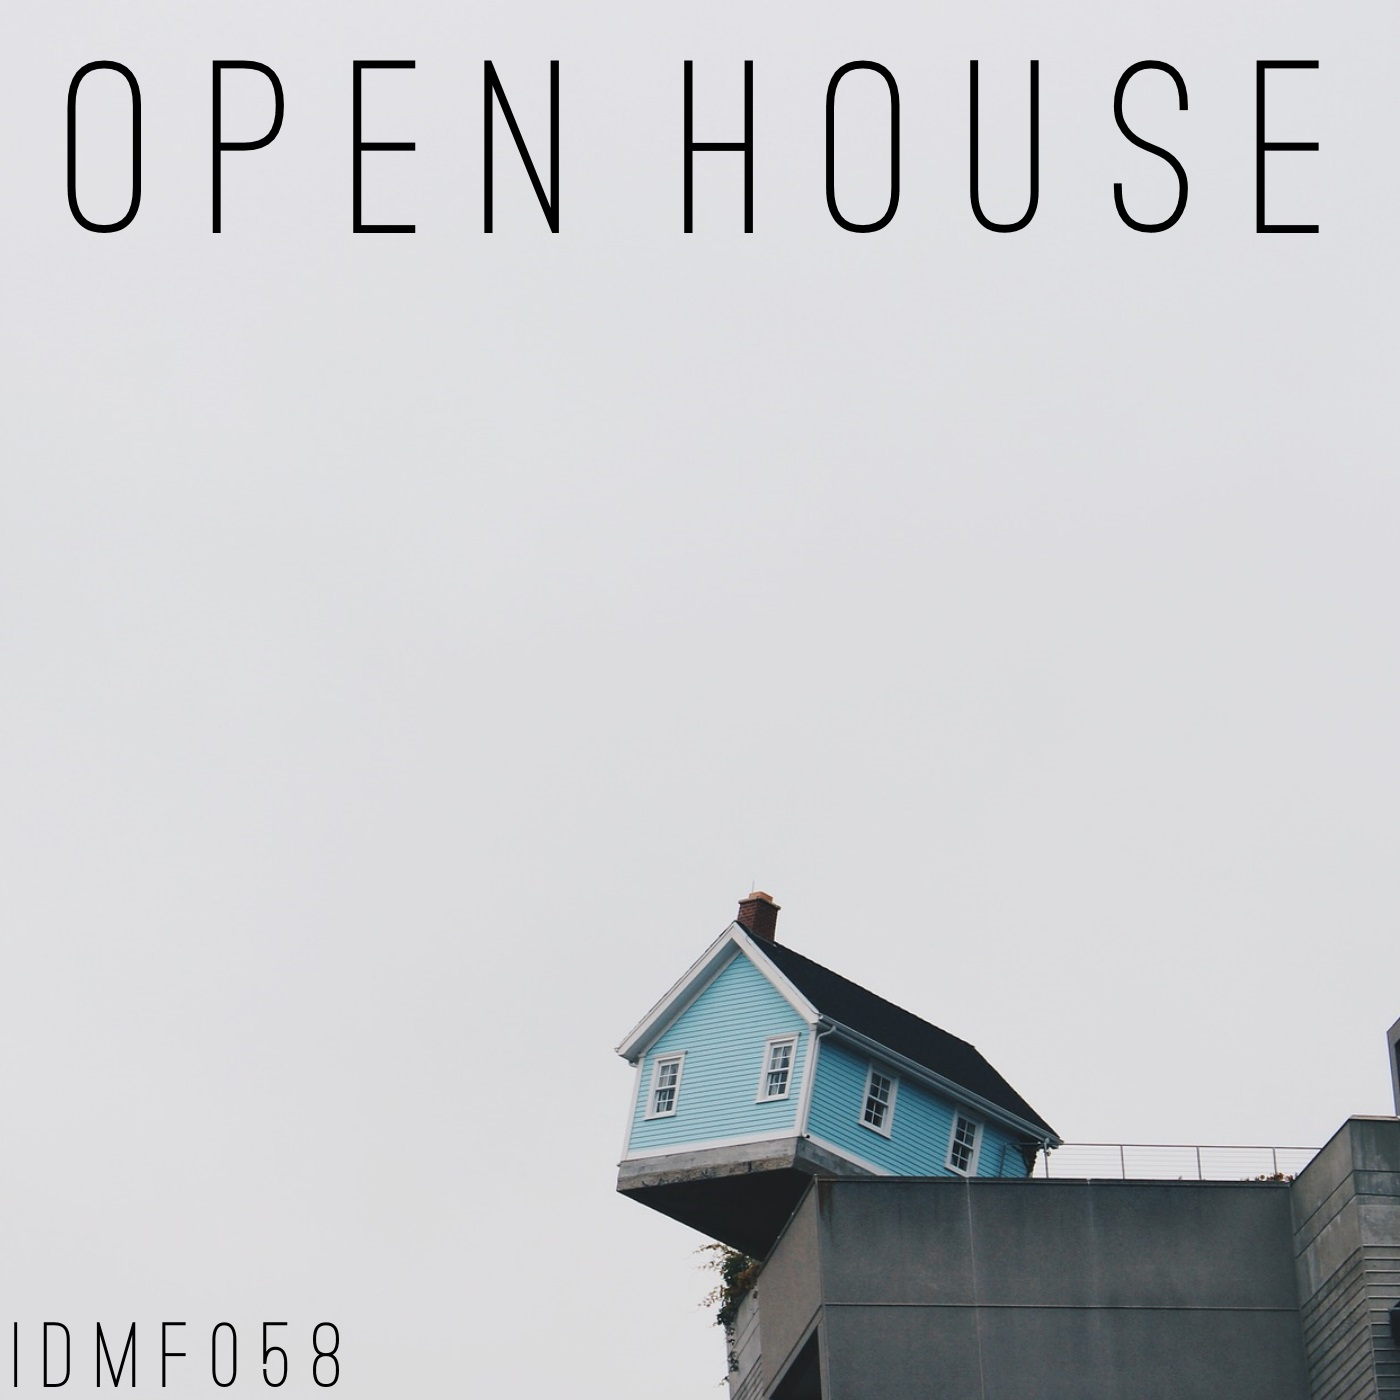 Open%20House%20Submission%20jpg